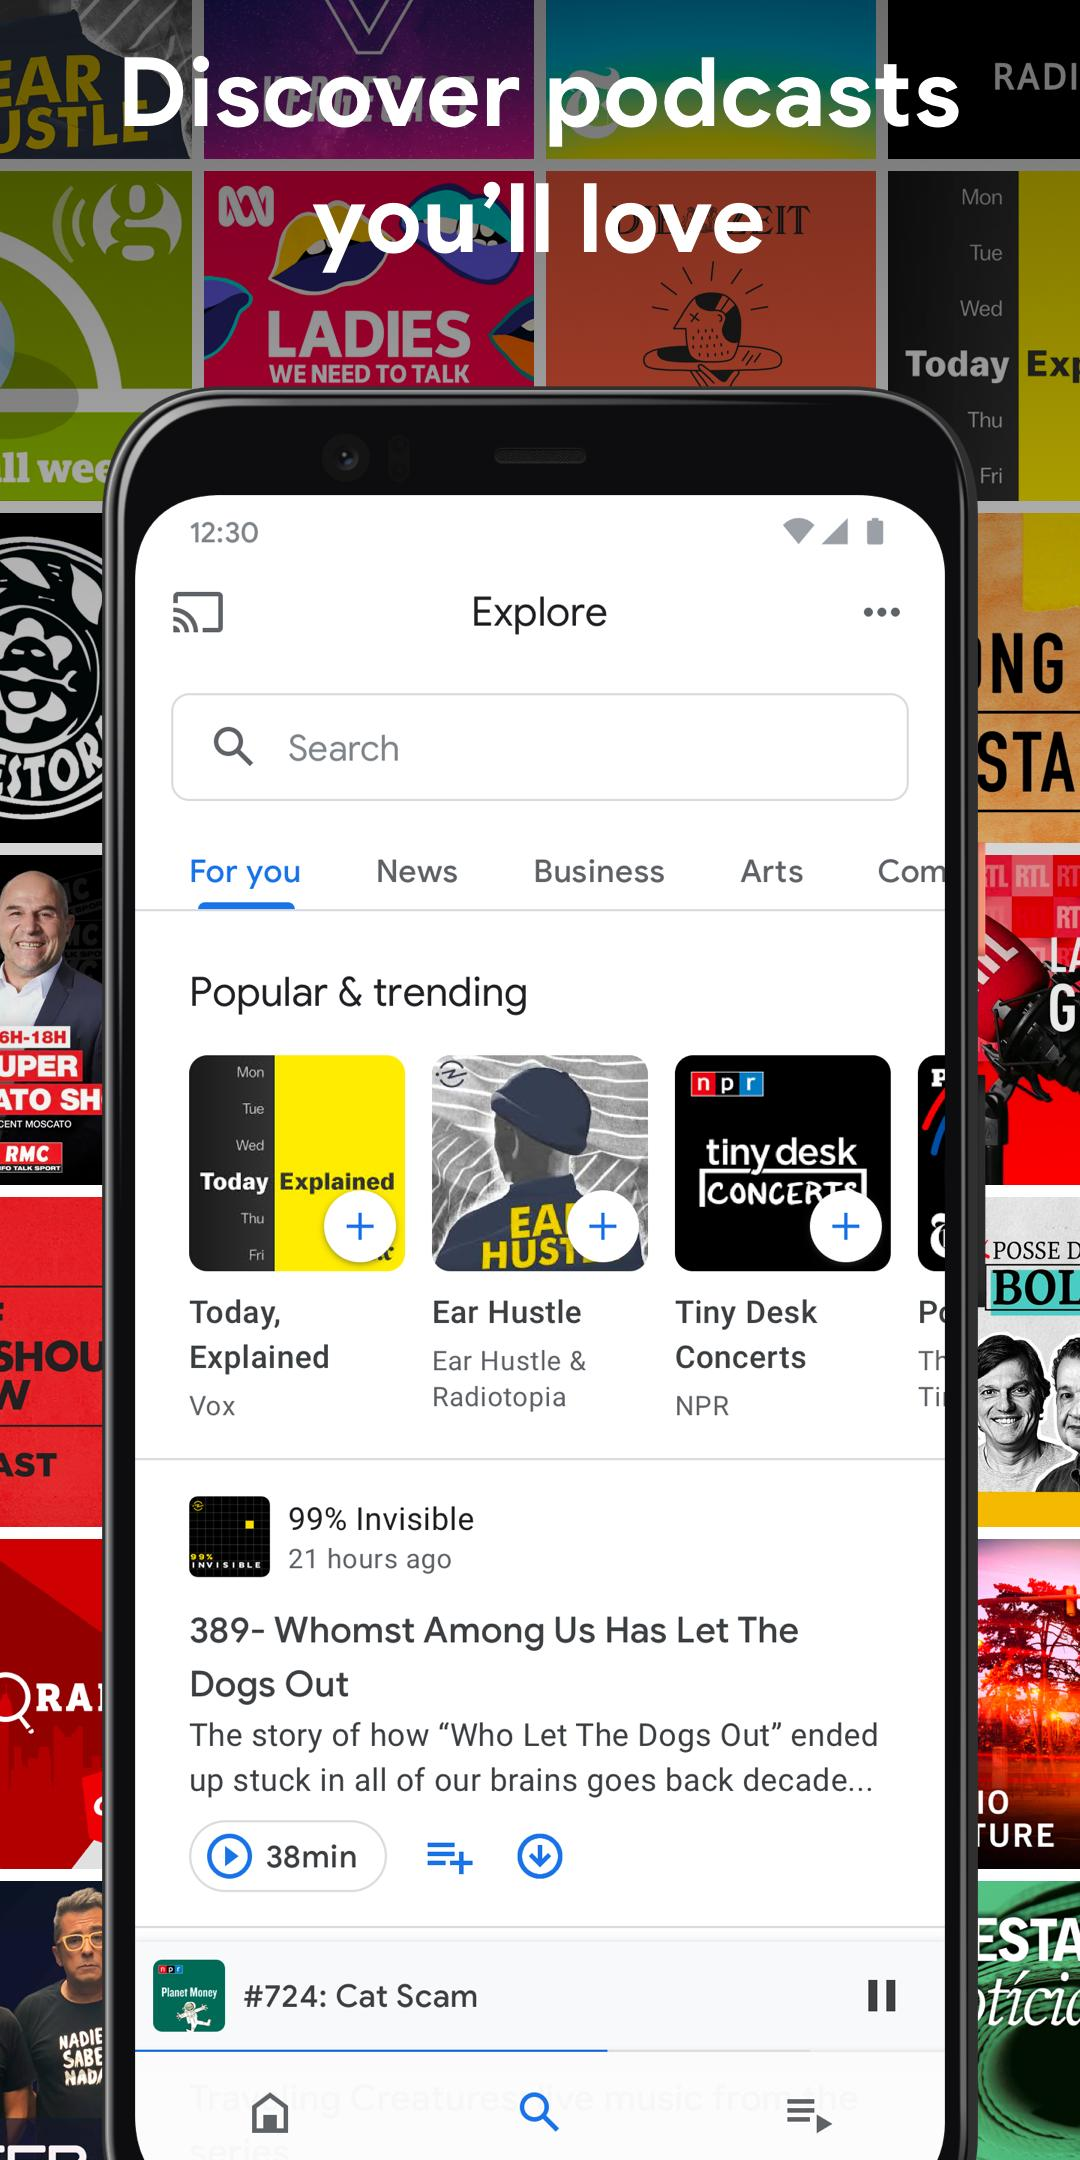 Google Podcasts Discover free & trending podcasts 1.0.0.301897054 Screenshot 2